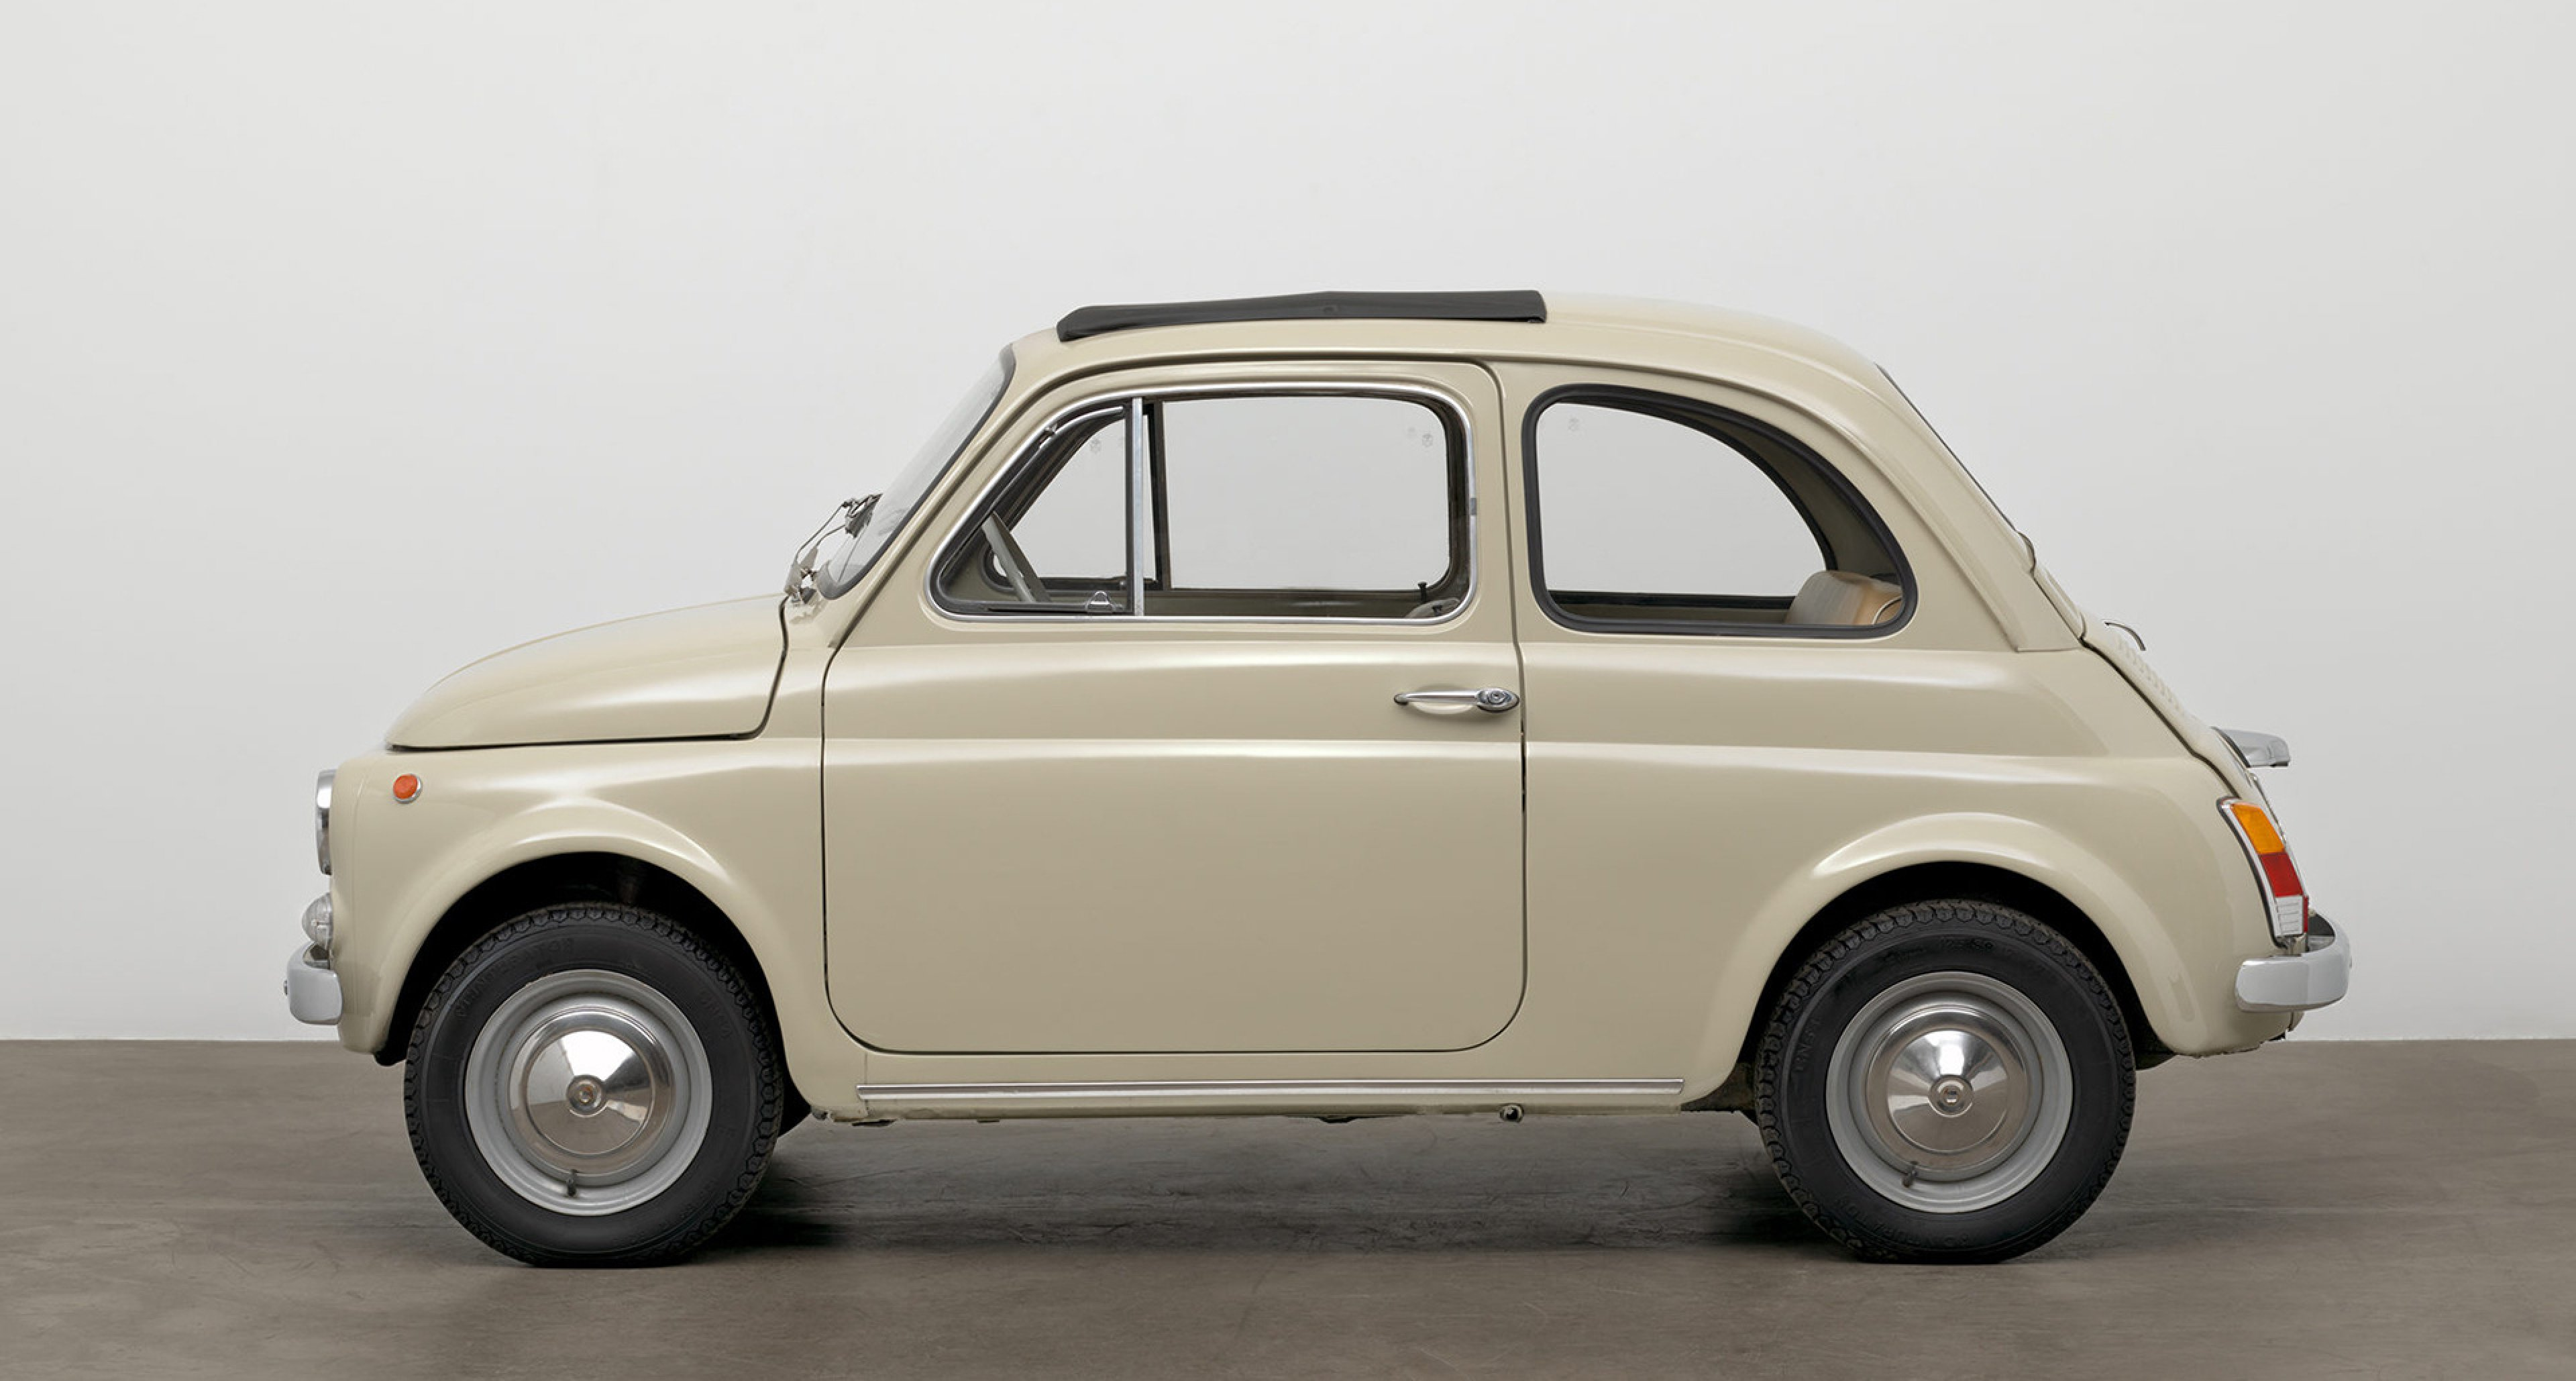 Dante Giacosa (Italian, 1905–1996). 500f city car. Designed 1957 (this example 1968). Steel with fabric top, 52 × 52 × 116 7/8″ (132.1 × 132.1 × 296.9 cm). Manufactured by Fiat S.p.A. (Turin, Italy, est. 1899). The Museum of Modern Art, New York. Gift of